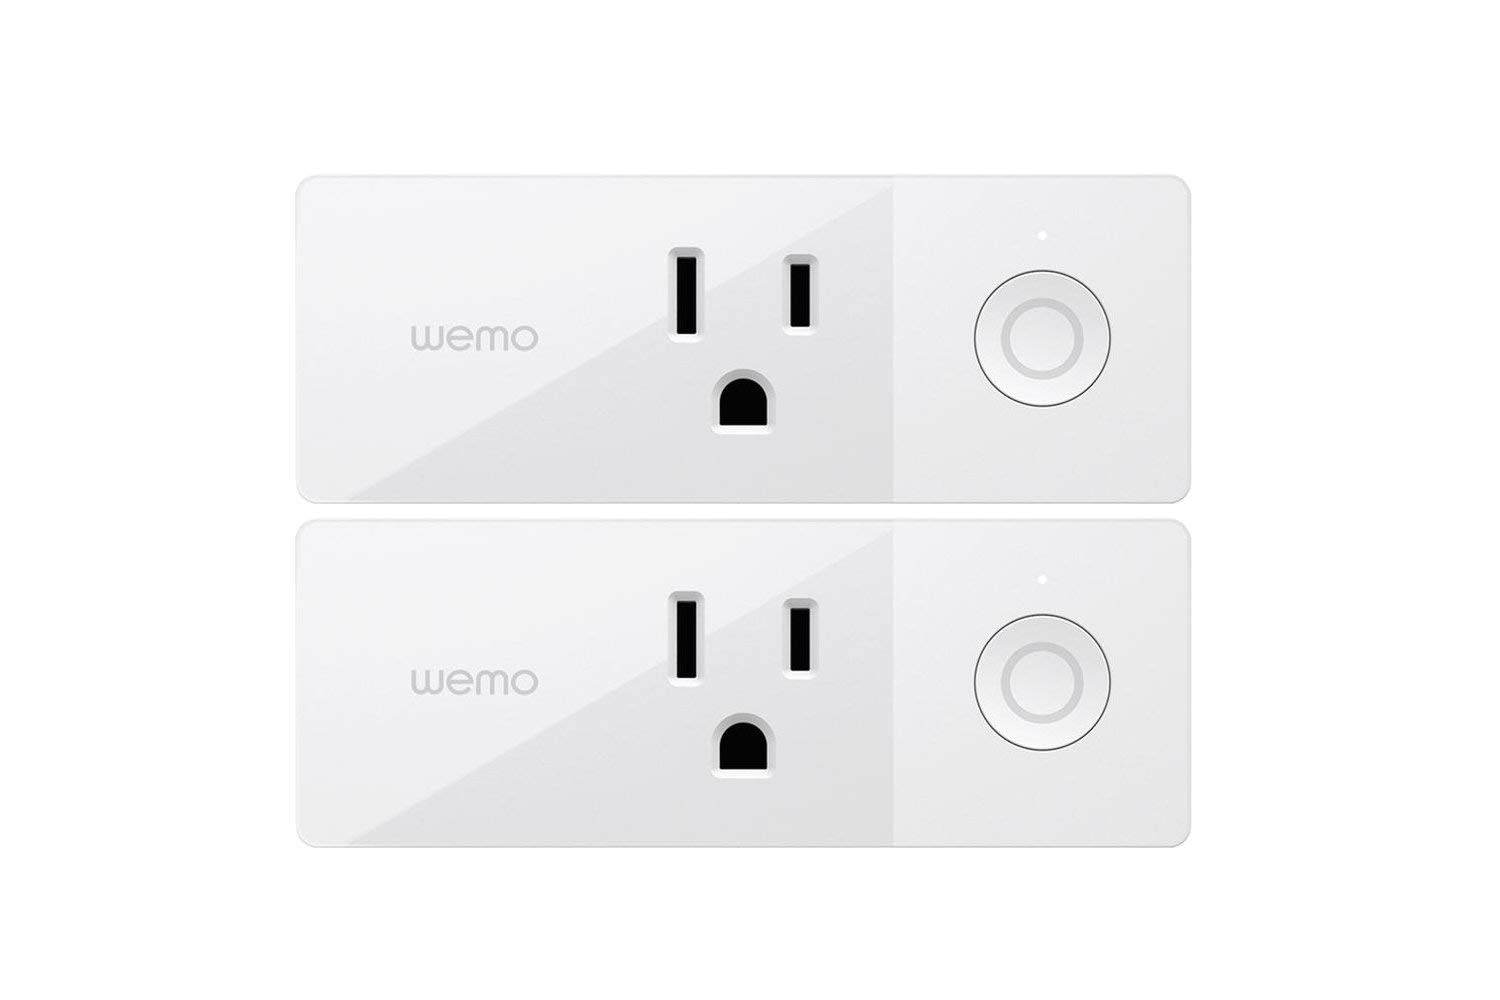 Wemo Mini Smart Plug, Wi-Fi Enabled, Compatible with Alexa (F7C063-RM2) (2 pack) (Renewed)